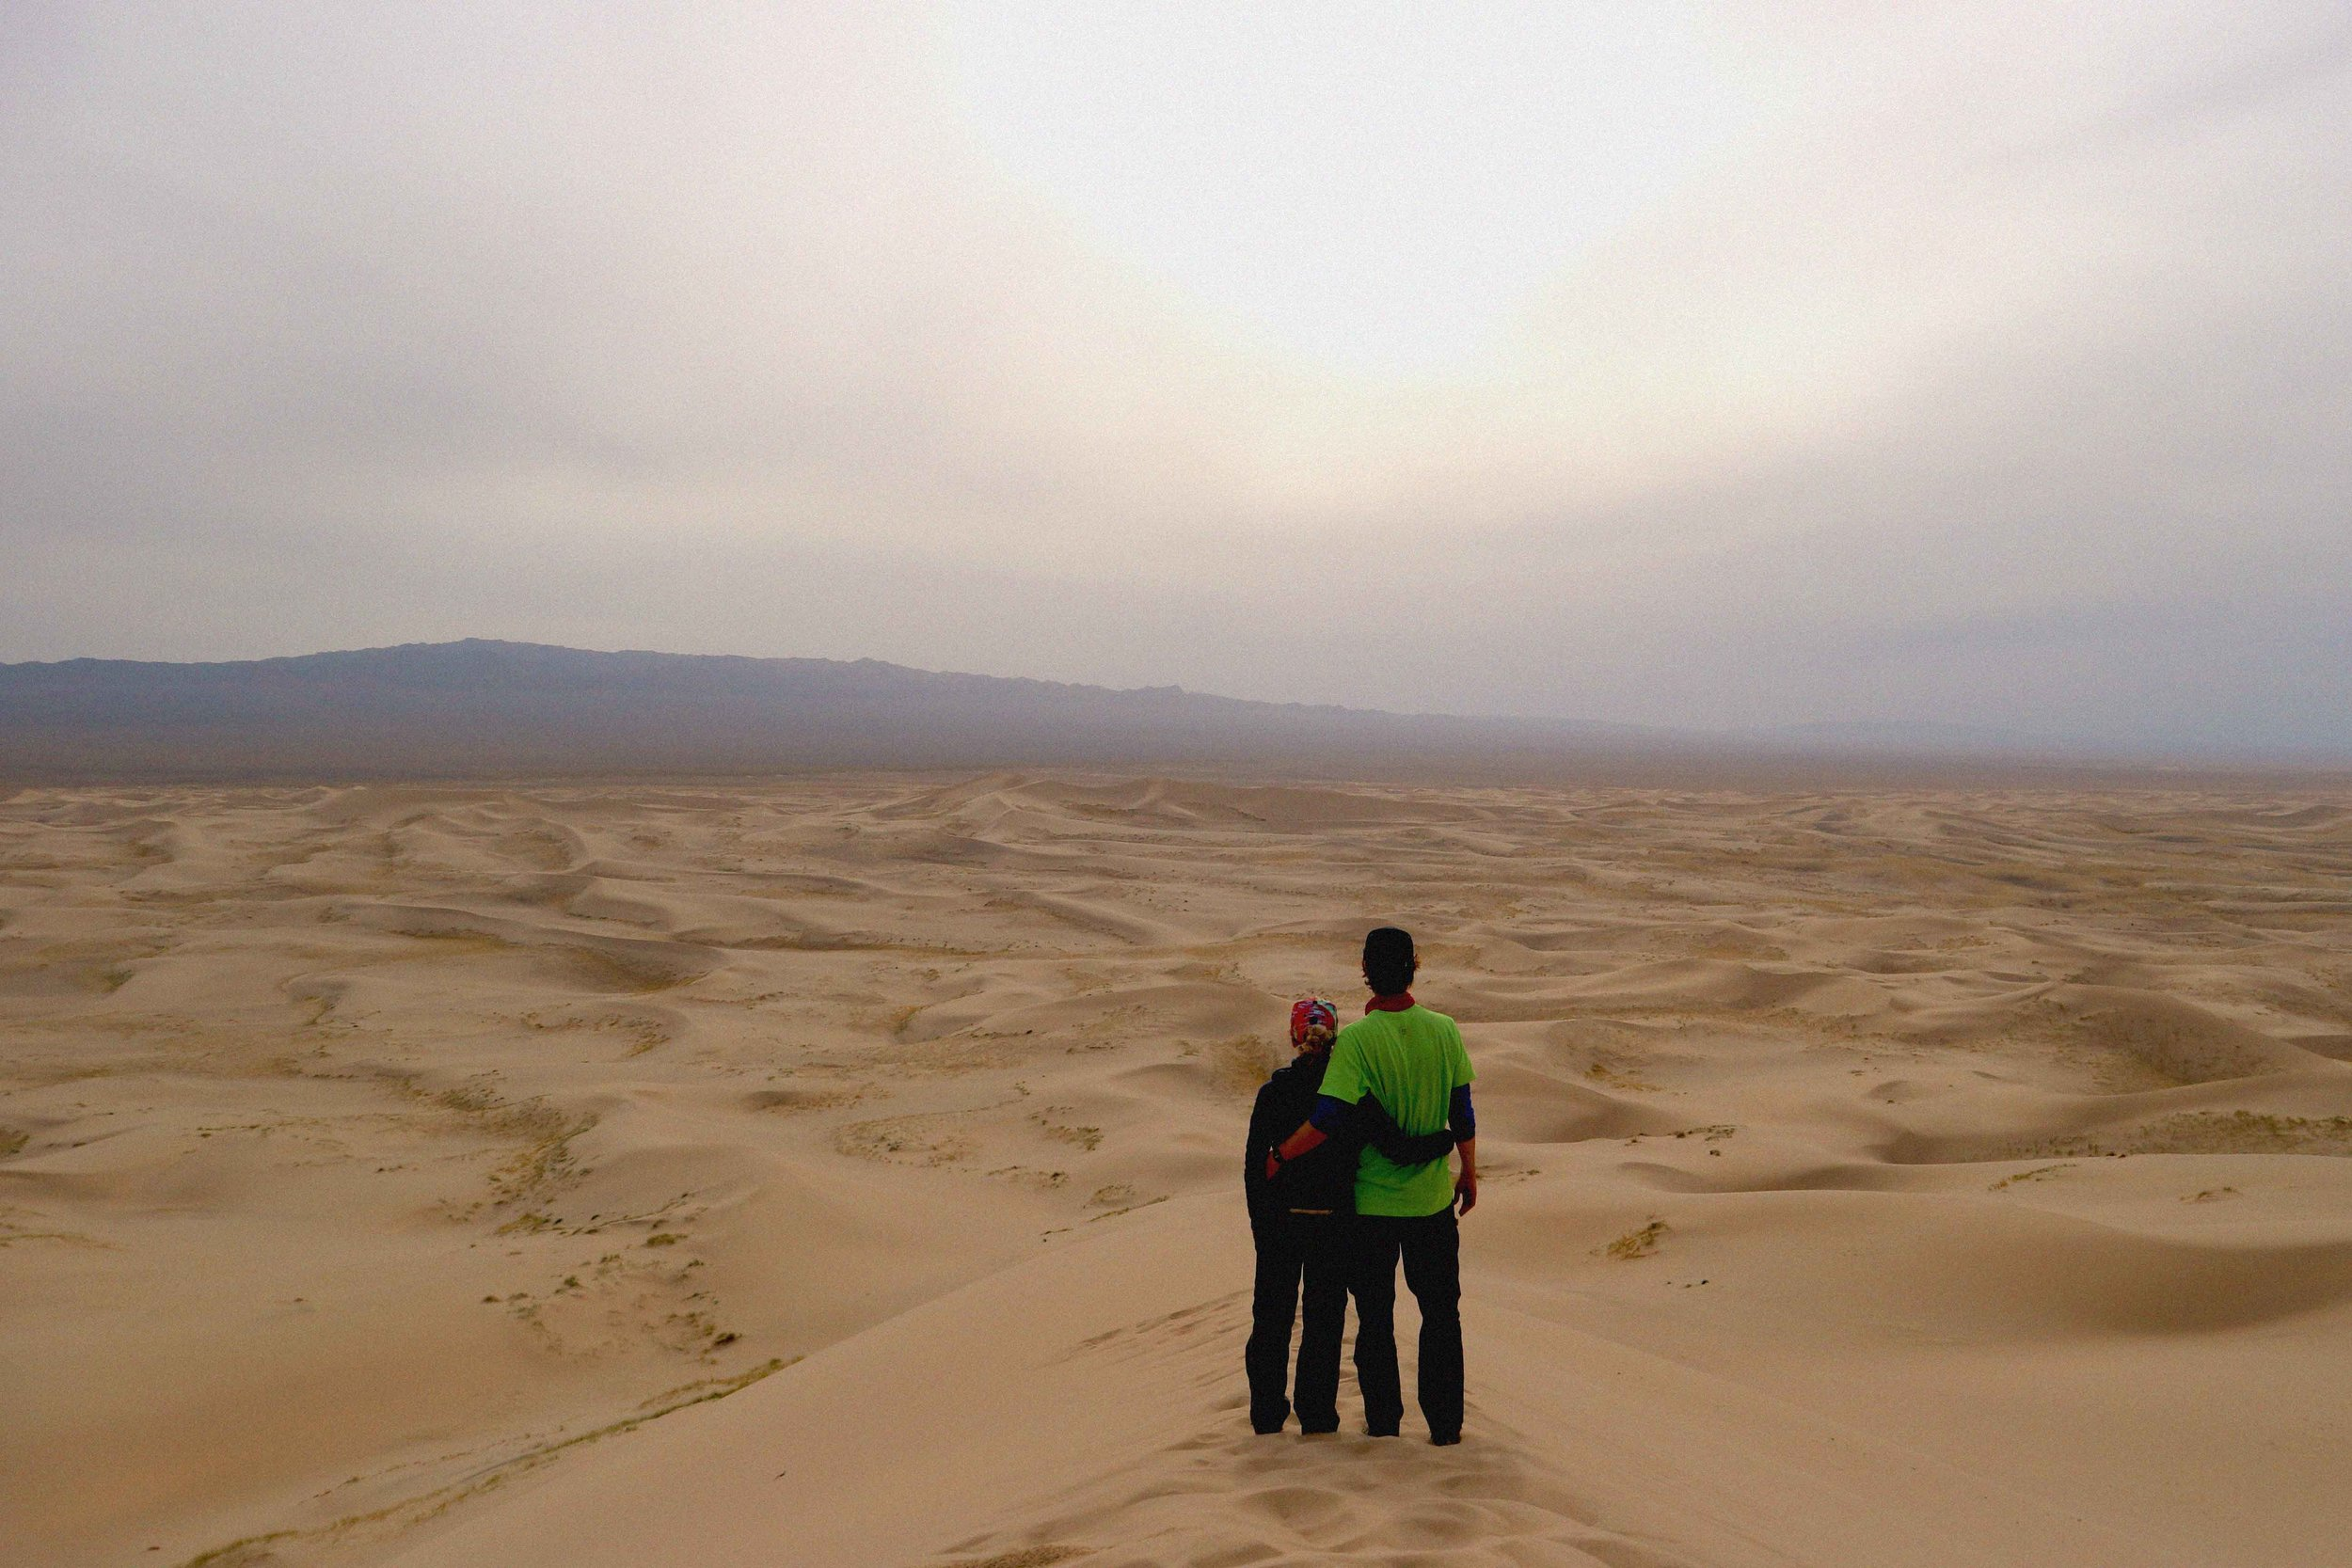 Sight seeing at the 180km sand dunes in the Gobi desert